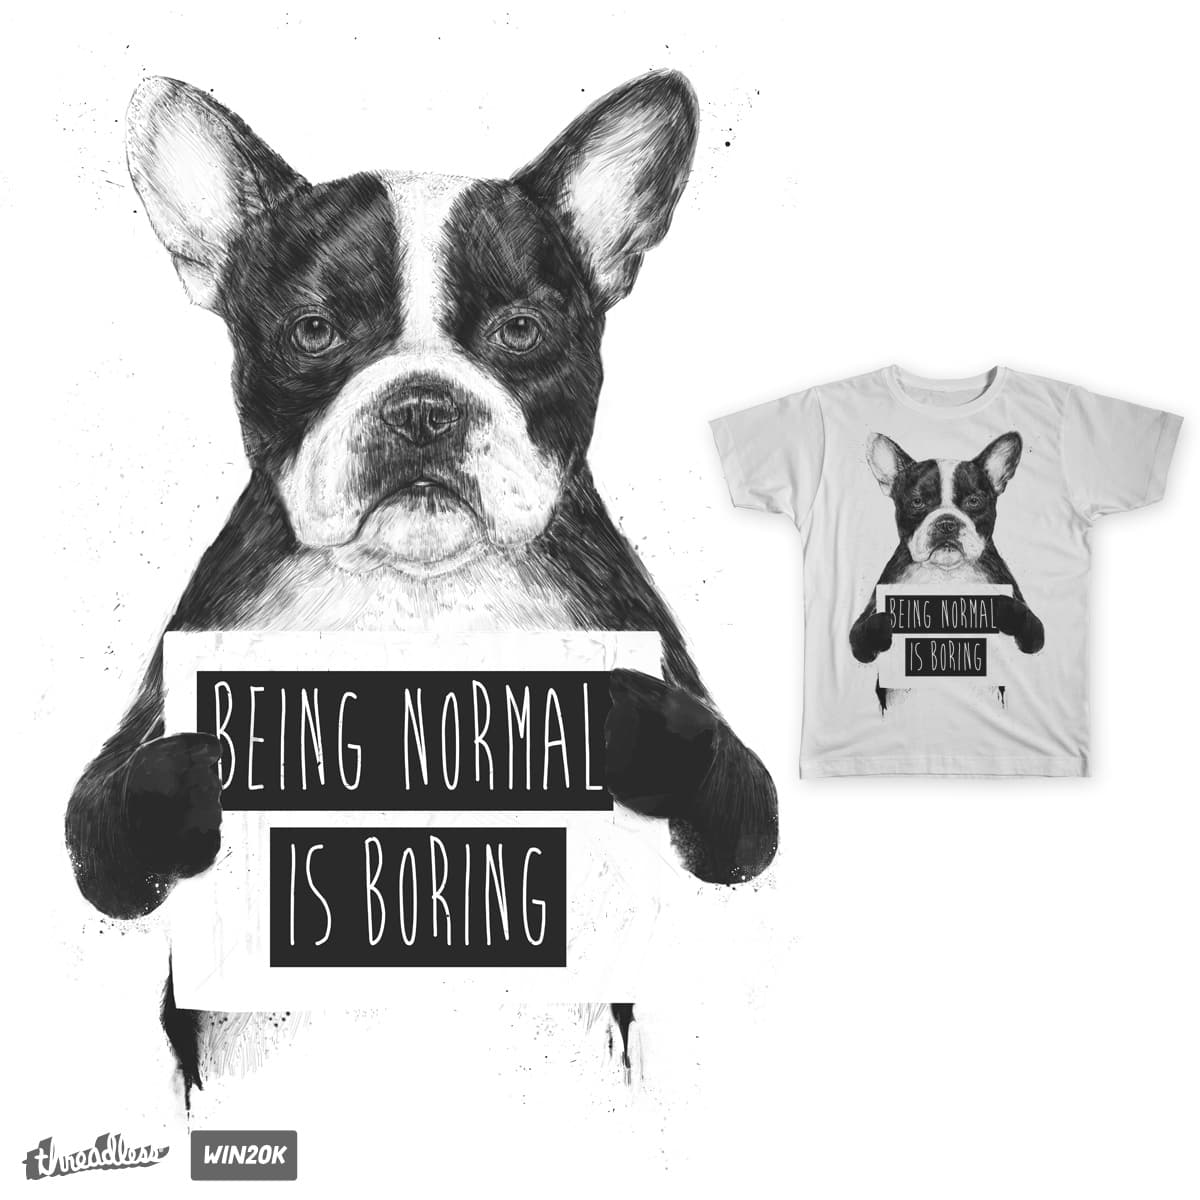 Being normail is boring by soltib on Threadless